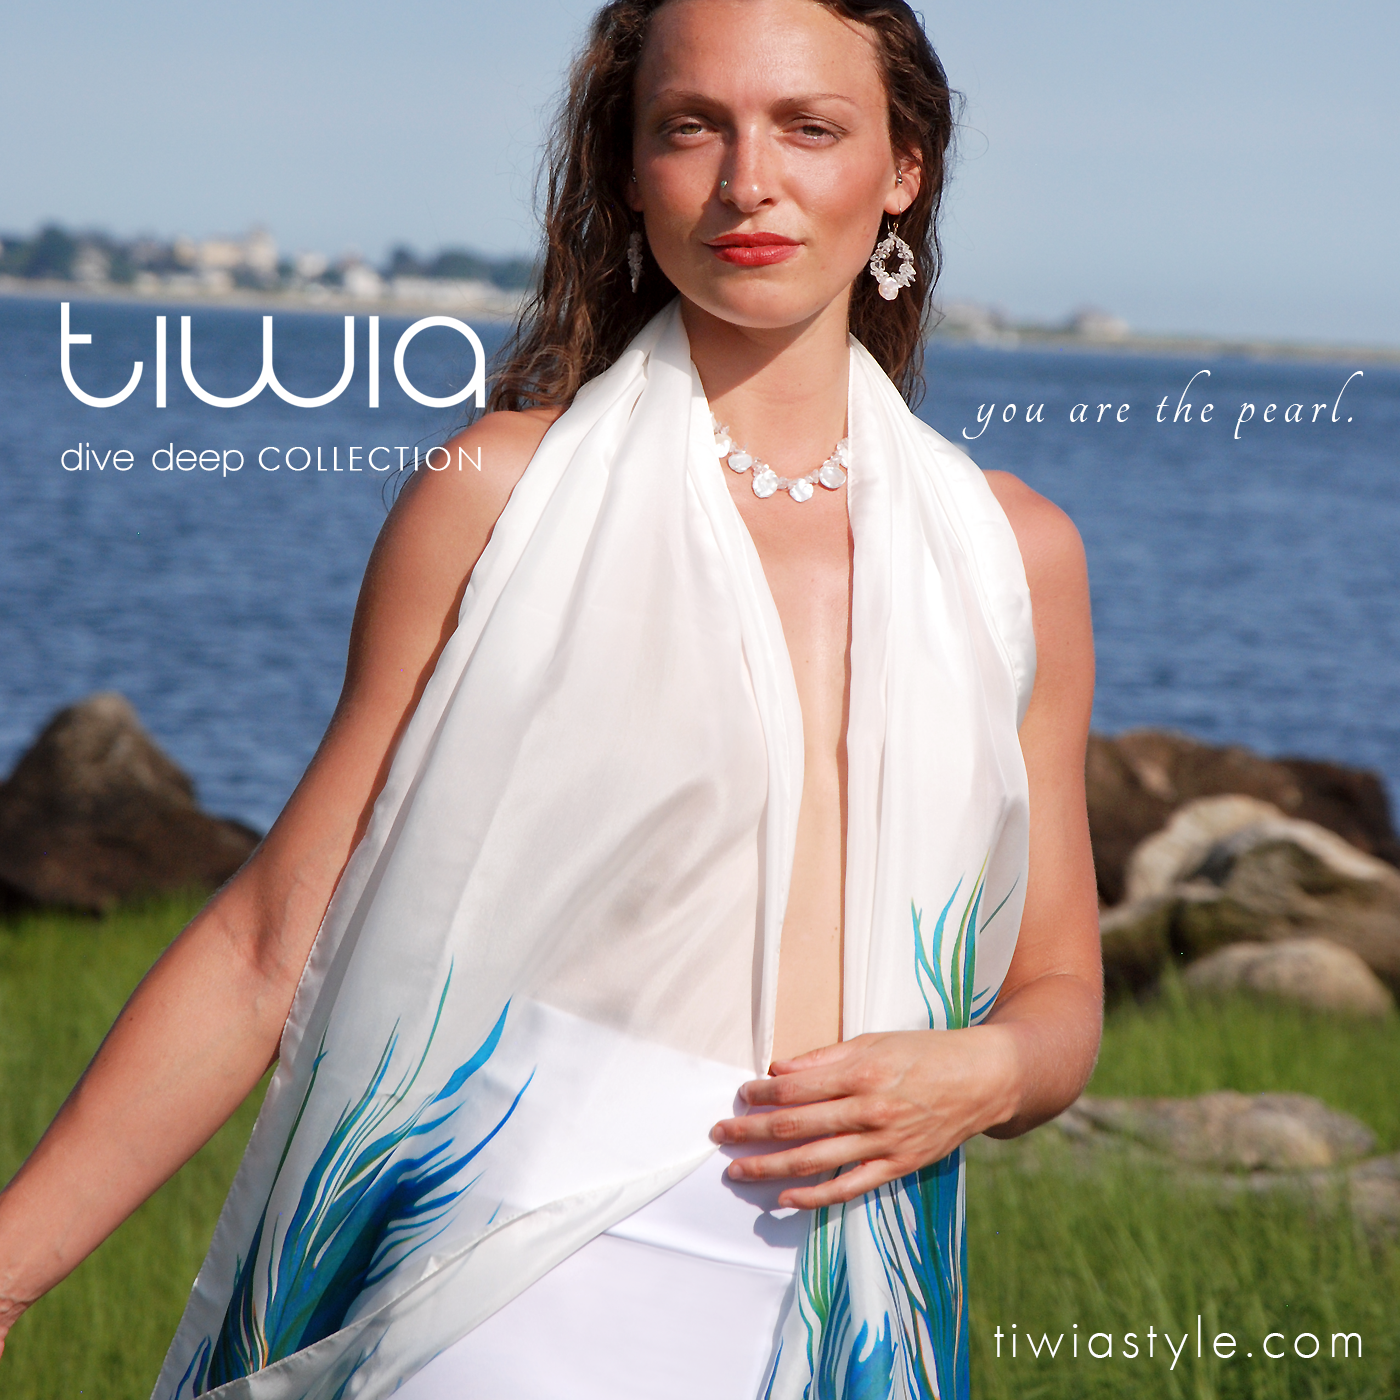 tiwia dive deep ad instagram emily close fishtail scarf tou are the pearl.png